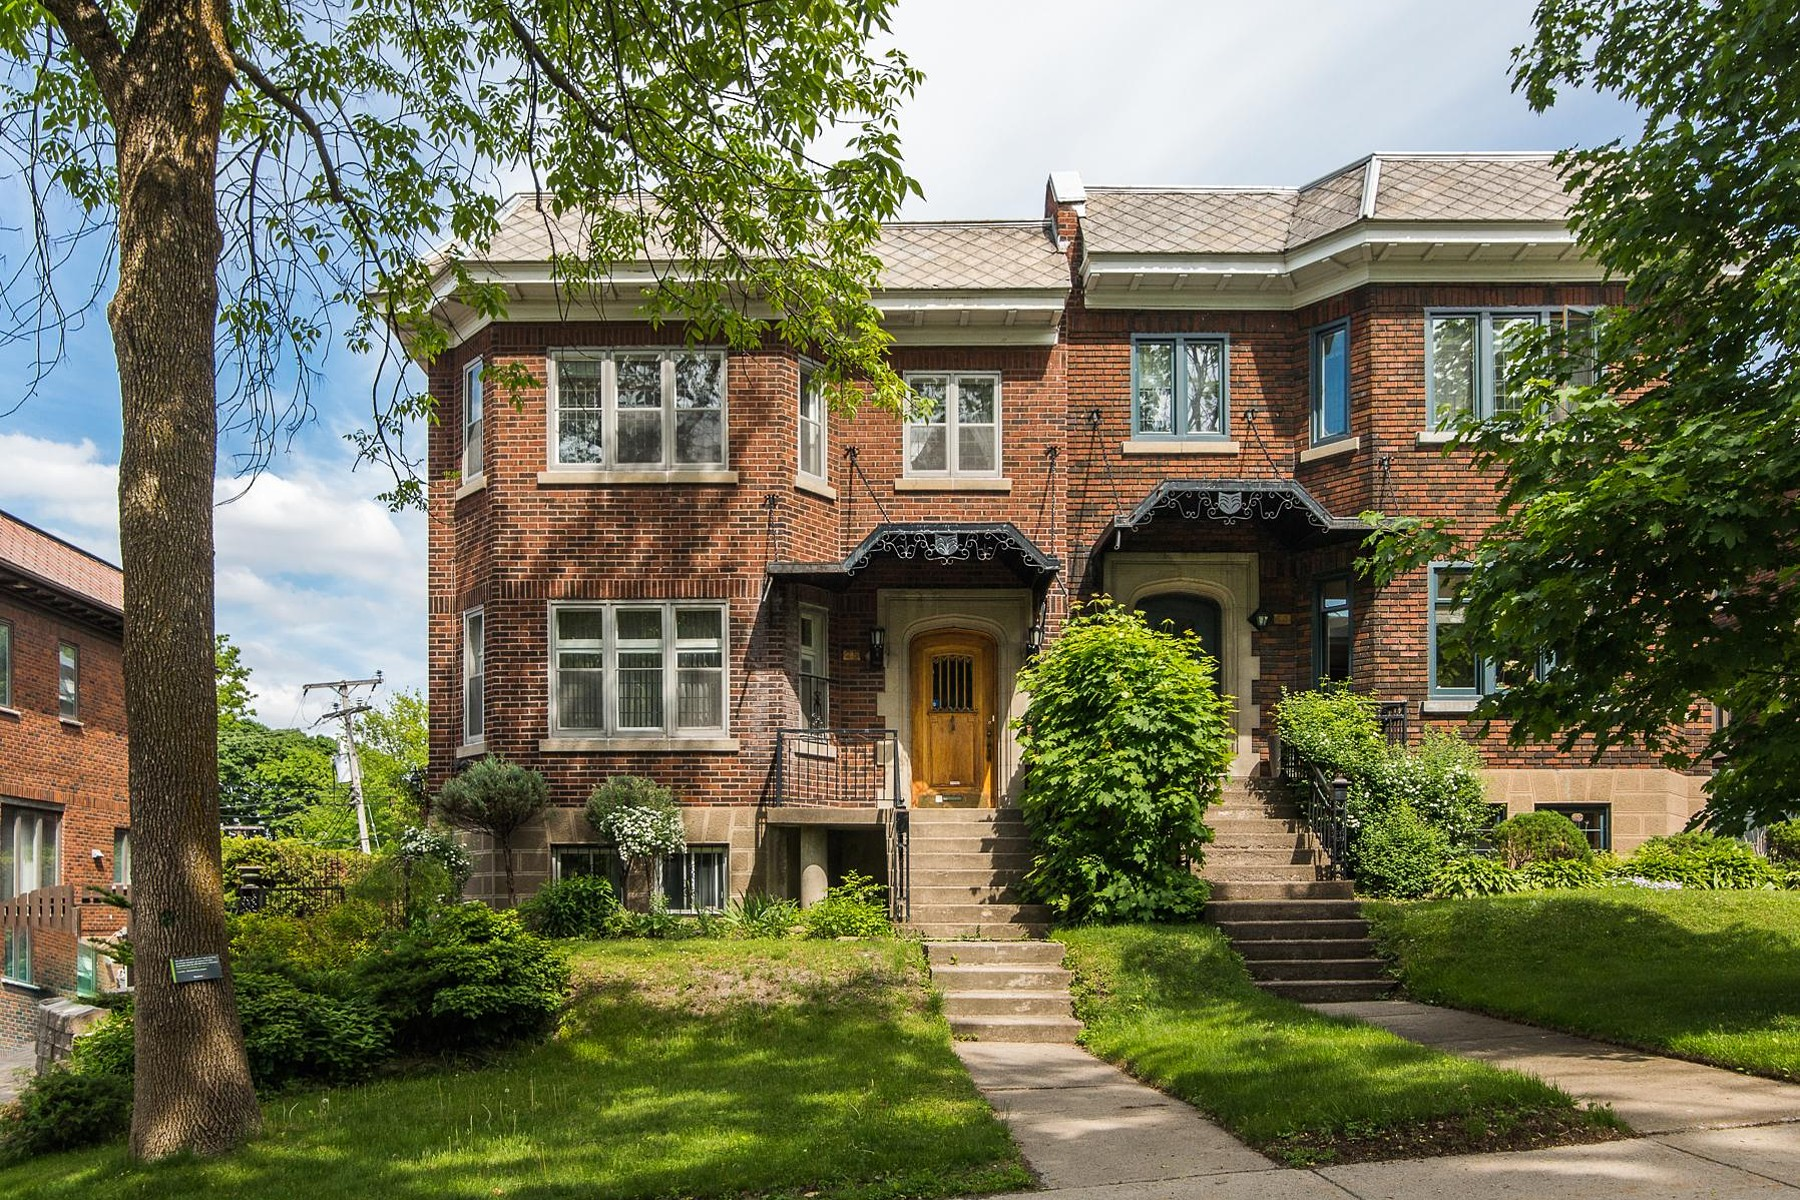 Single Family Home for Sale at Outremont (Montréal), Montréal 25 Av. Springgrove Outremont, Quebec, H2V3J1 Canada